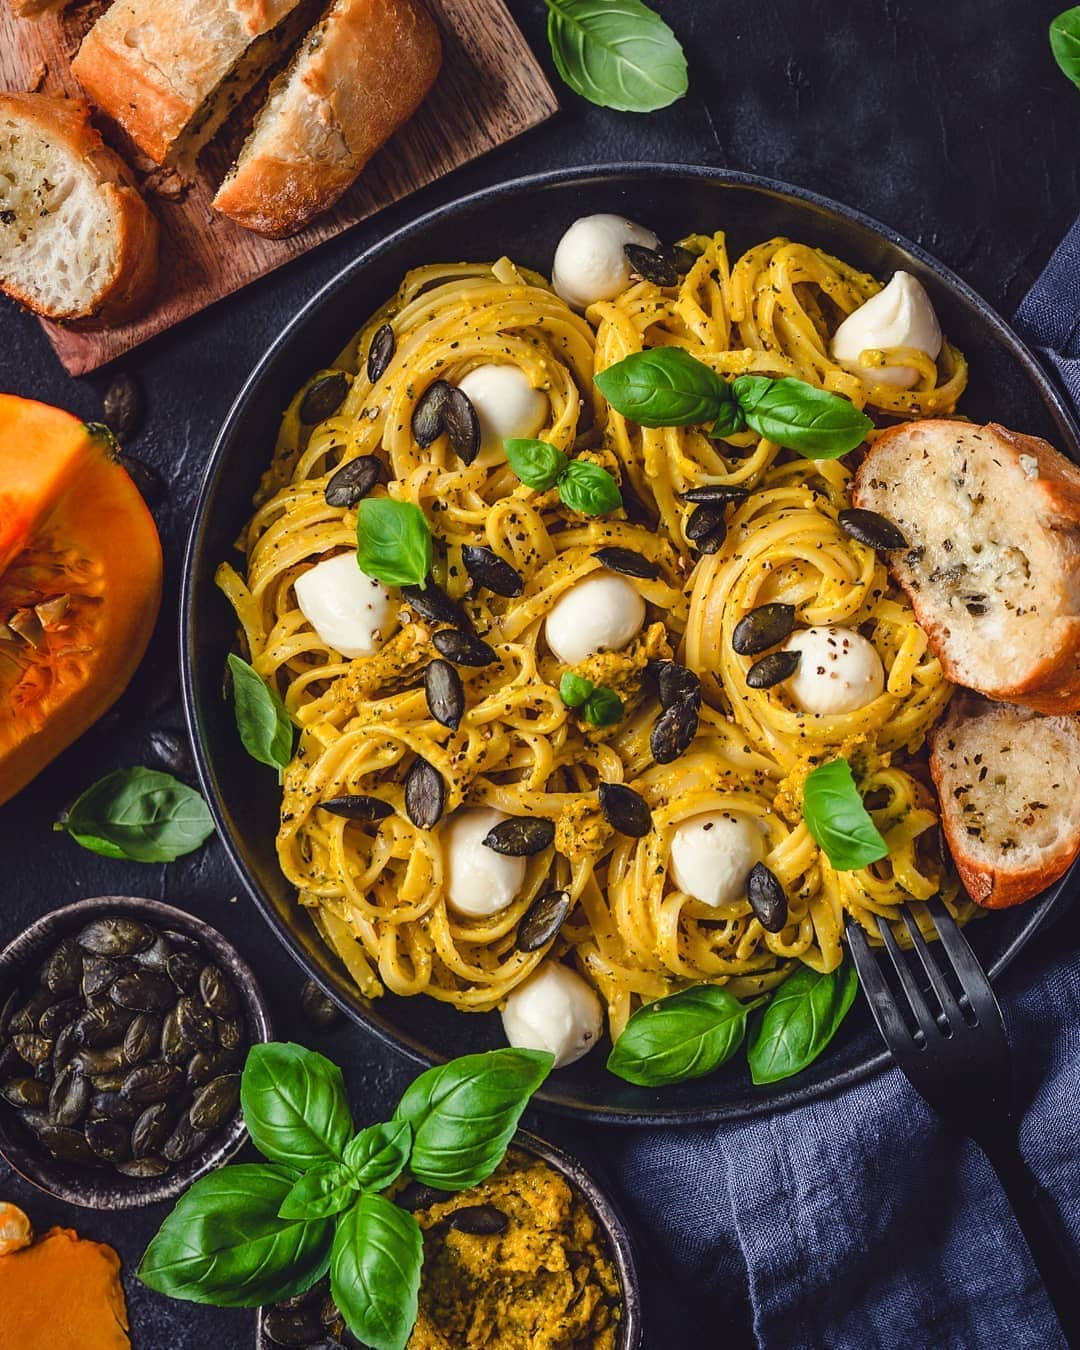 spaghetti with pumpkin pesto and baguette display image  d2c8d75e